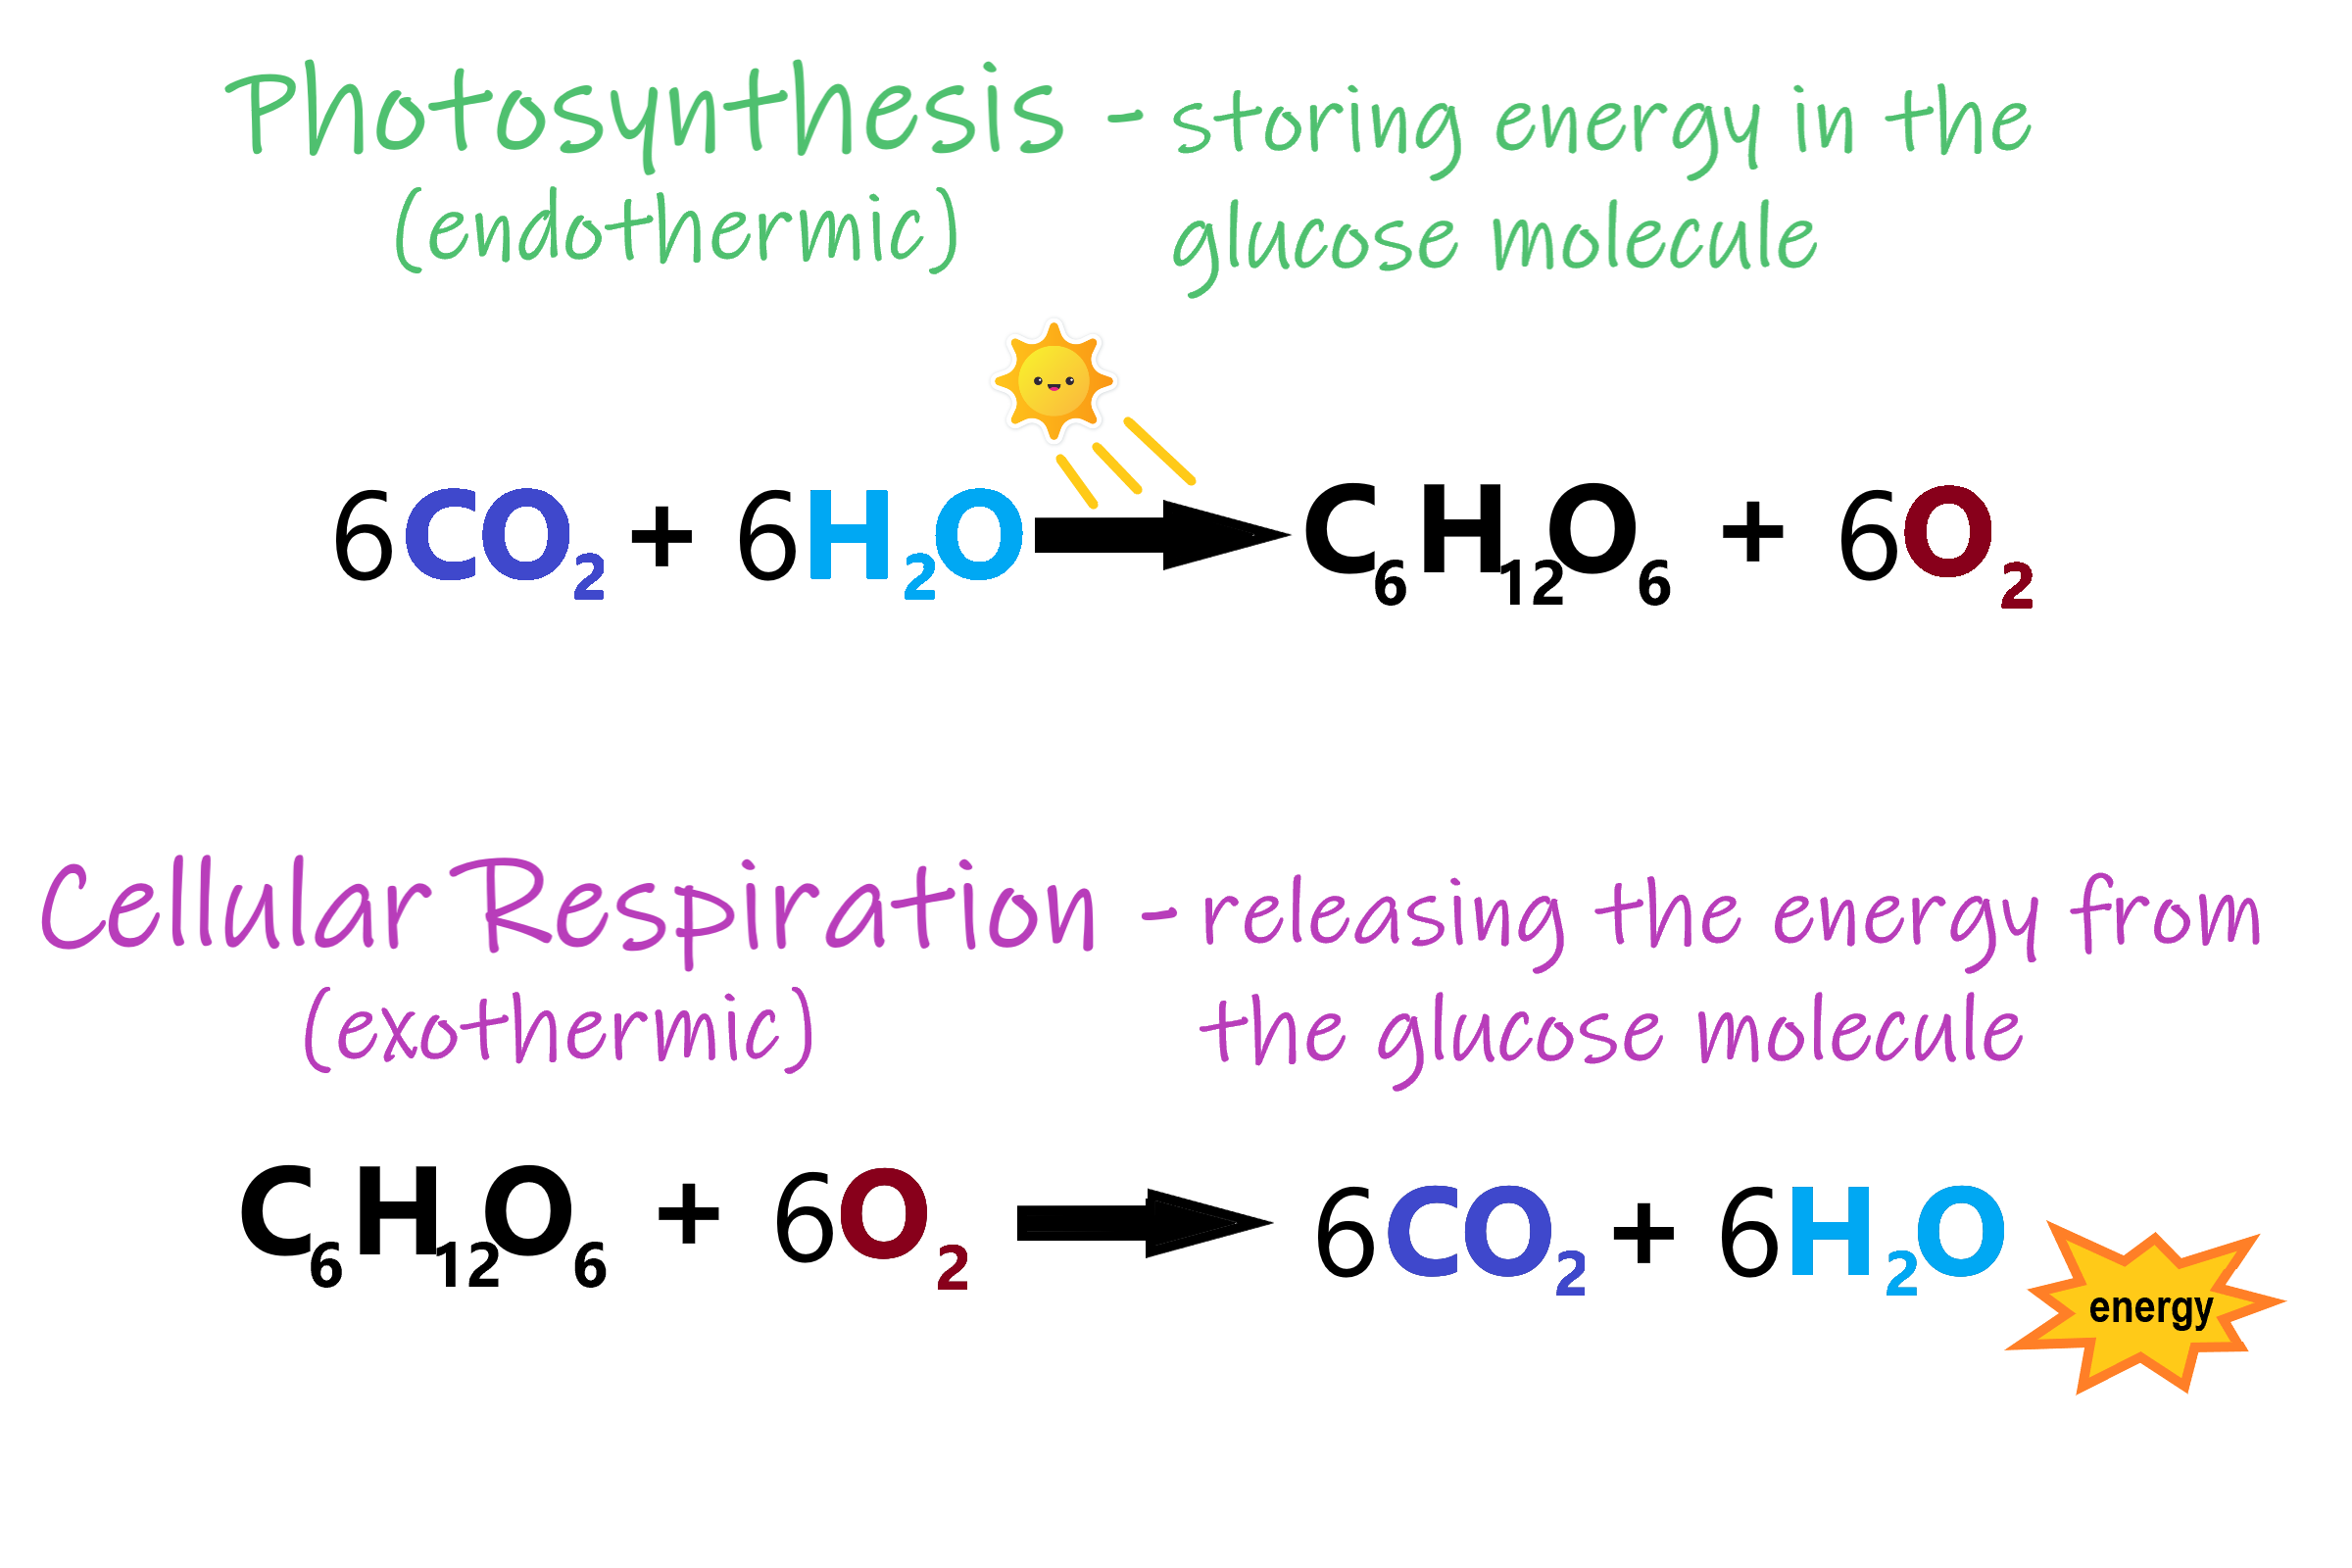 Image shows the formula for photosynthesis: Carbon dioxide and water are converted to glucose and oxygen, which is an endothermic reaction drawing its energy from the sun. Cellular respiration carries out the opposite reaction, breaking down glucose in the presence of oxygen to produce carbon dioxide and water, and releasing the energy previously stored in the glucose molecule, which is an exothermic reaction.